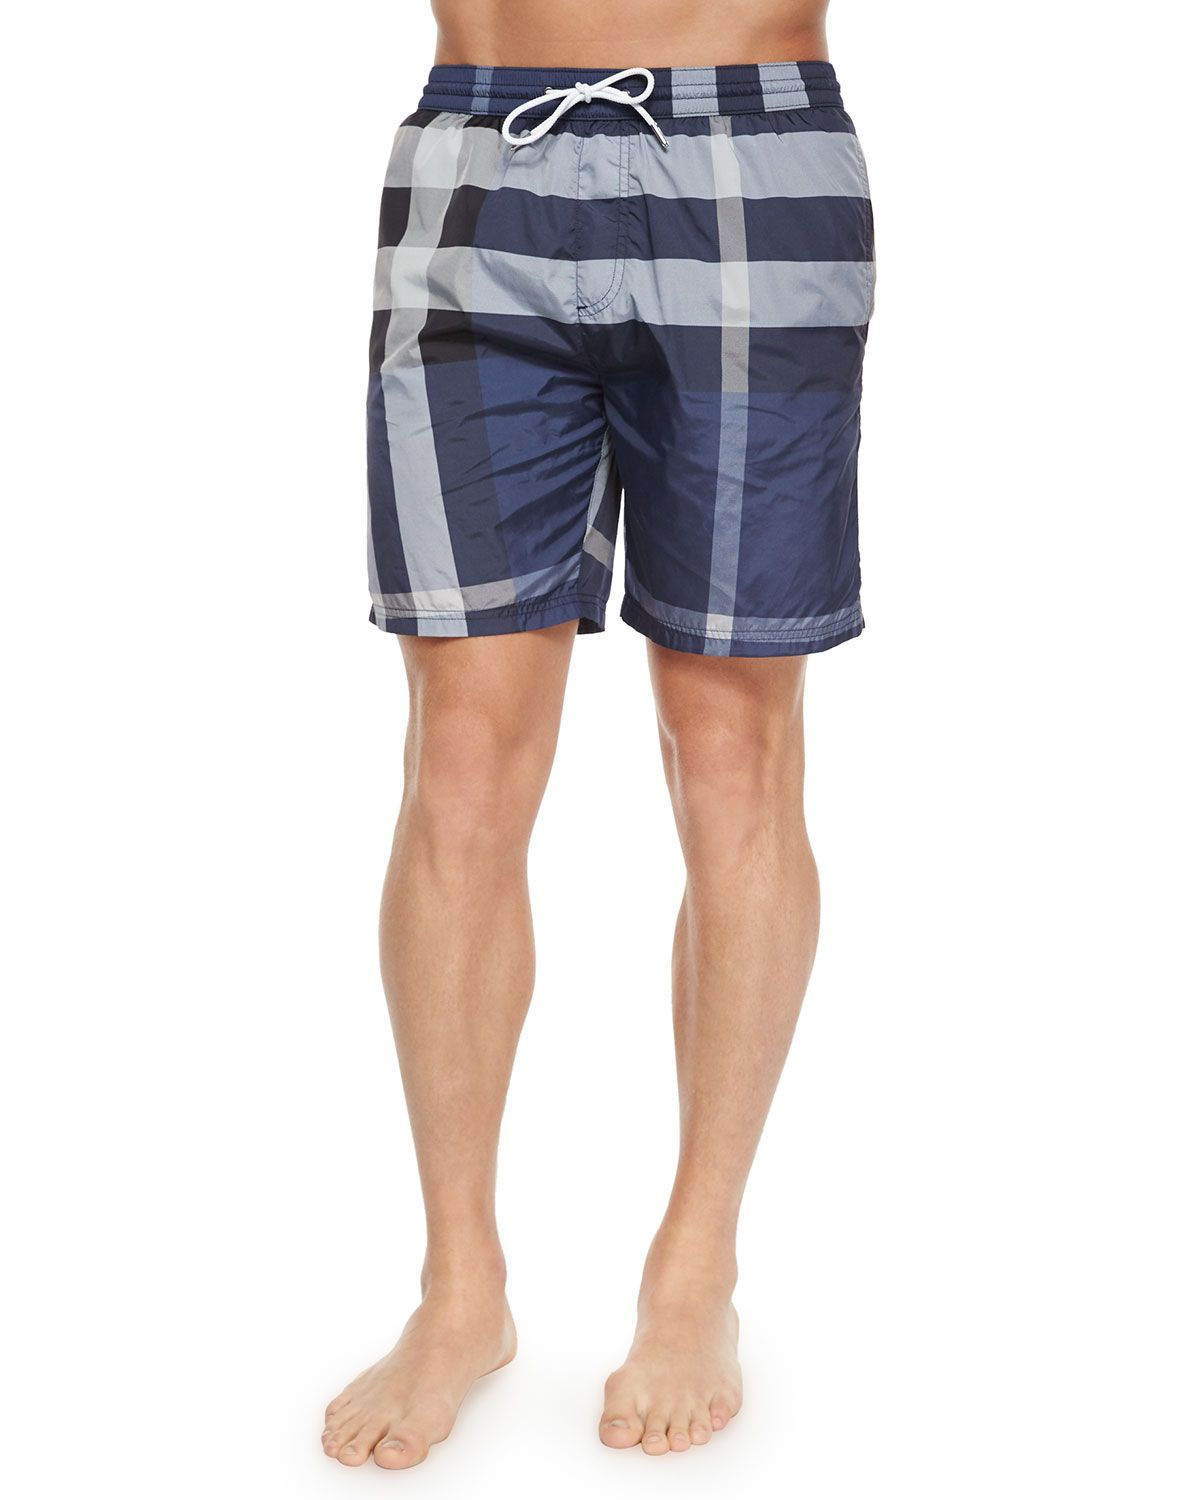 2665d22a4c Nylon Check Swim Shorts, Navy, Men's, Size: 3XL - Burberry Brit ...